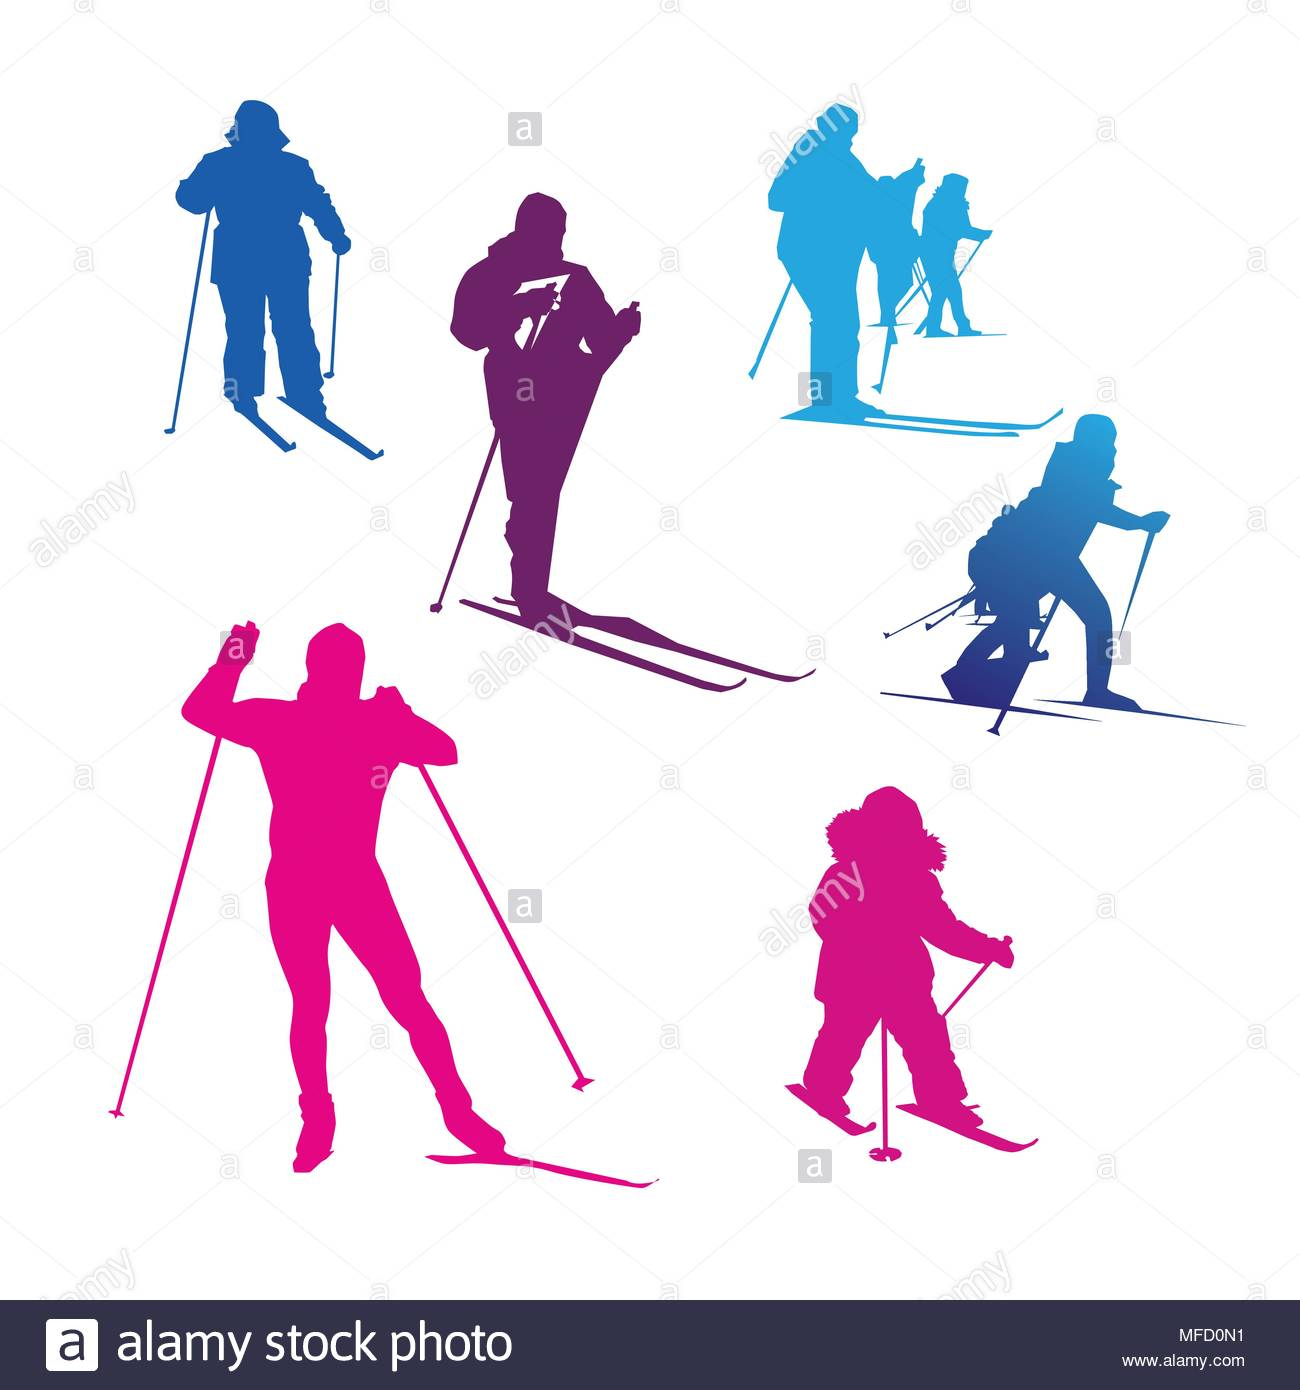 1300x1390 Girl Skiing Stock Vector Images